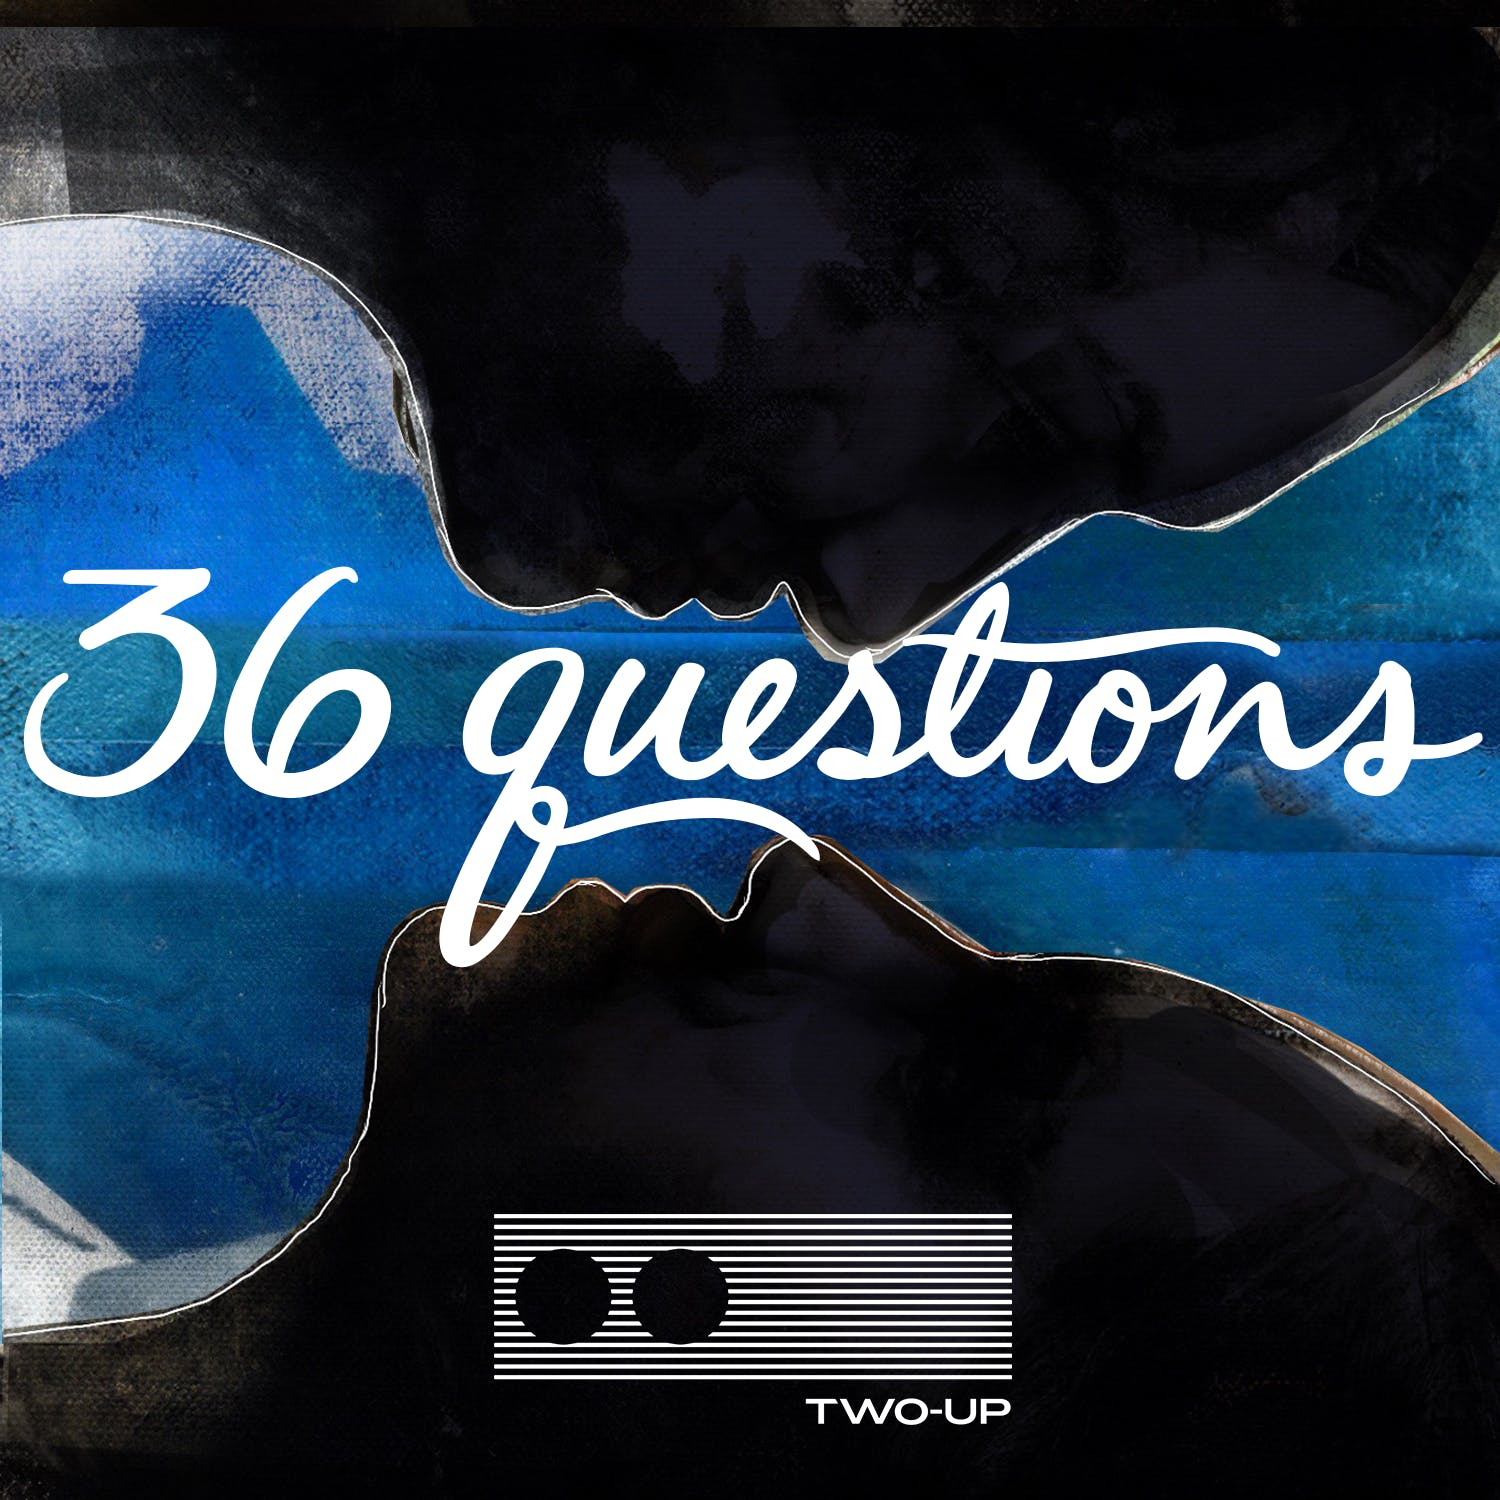 36 Questions - The Podcast Musical - Act 2 of 3